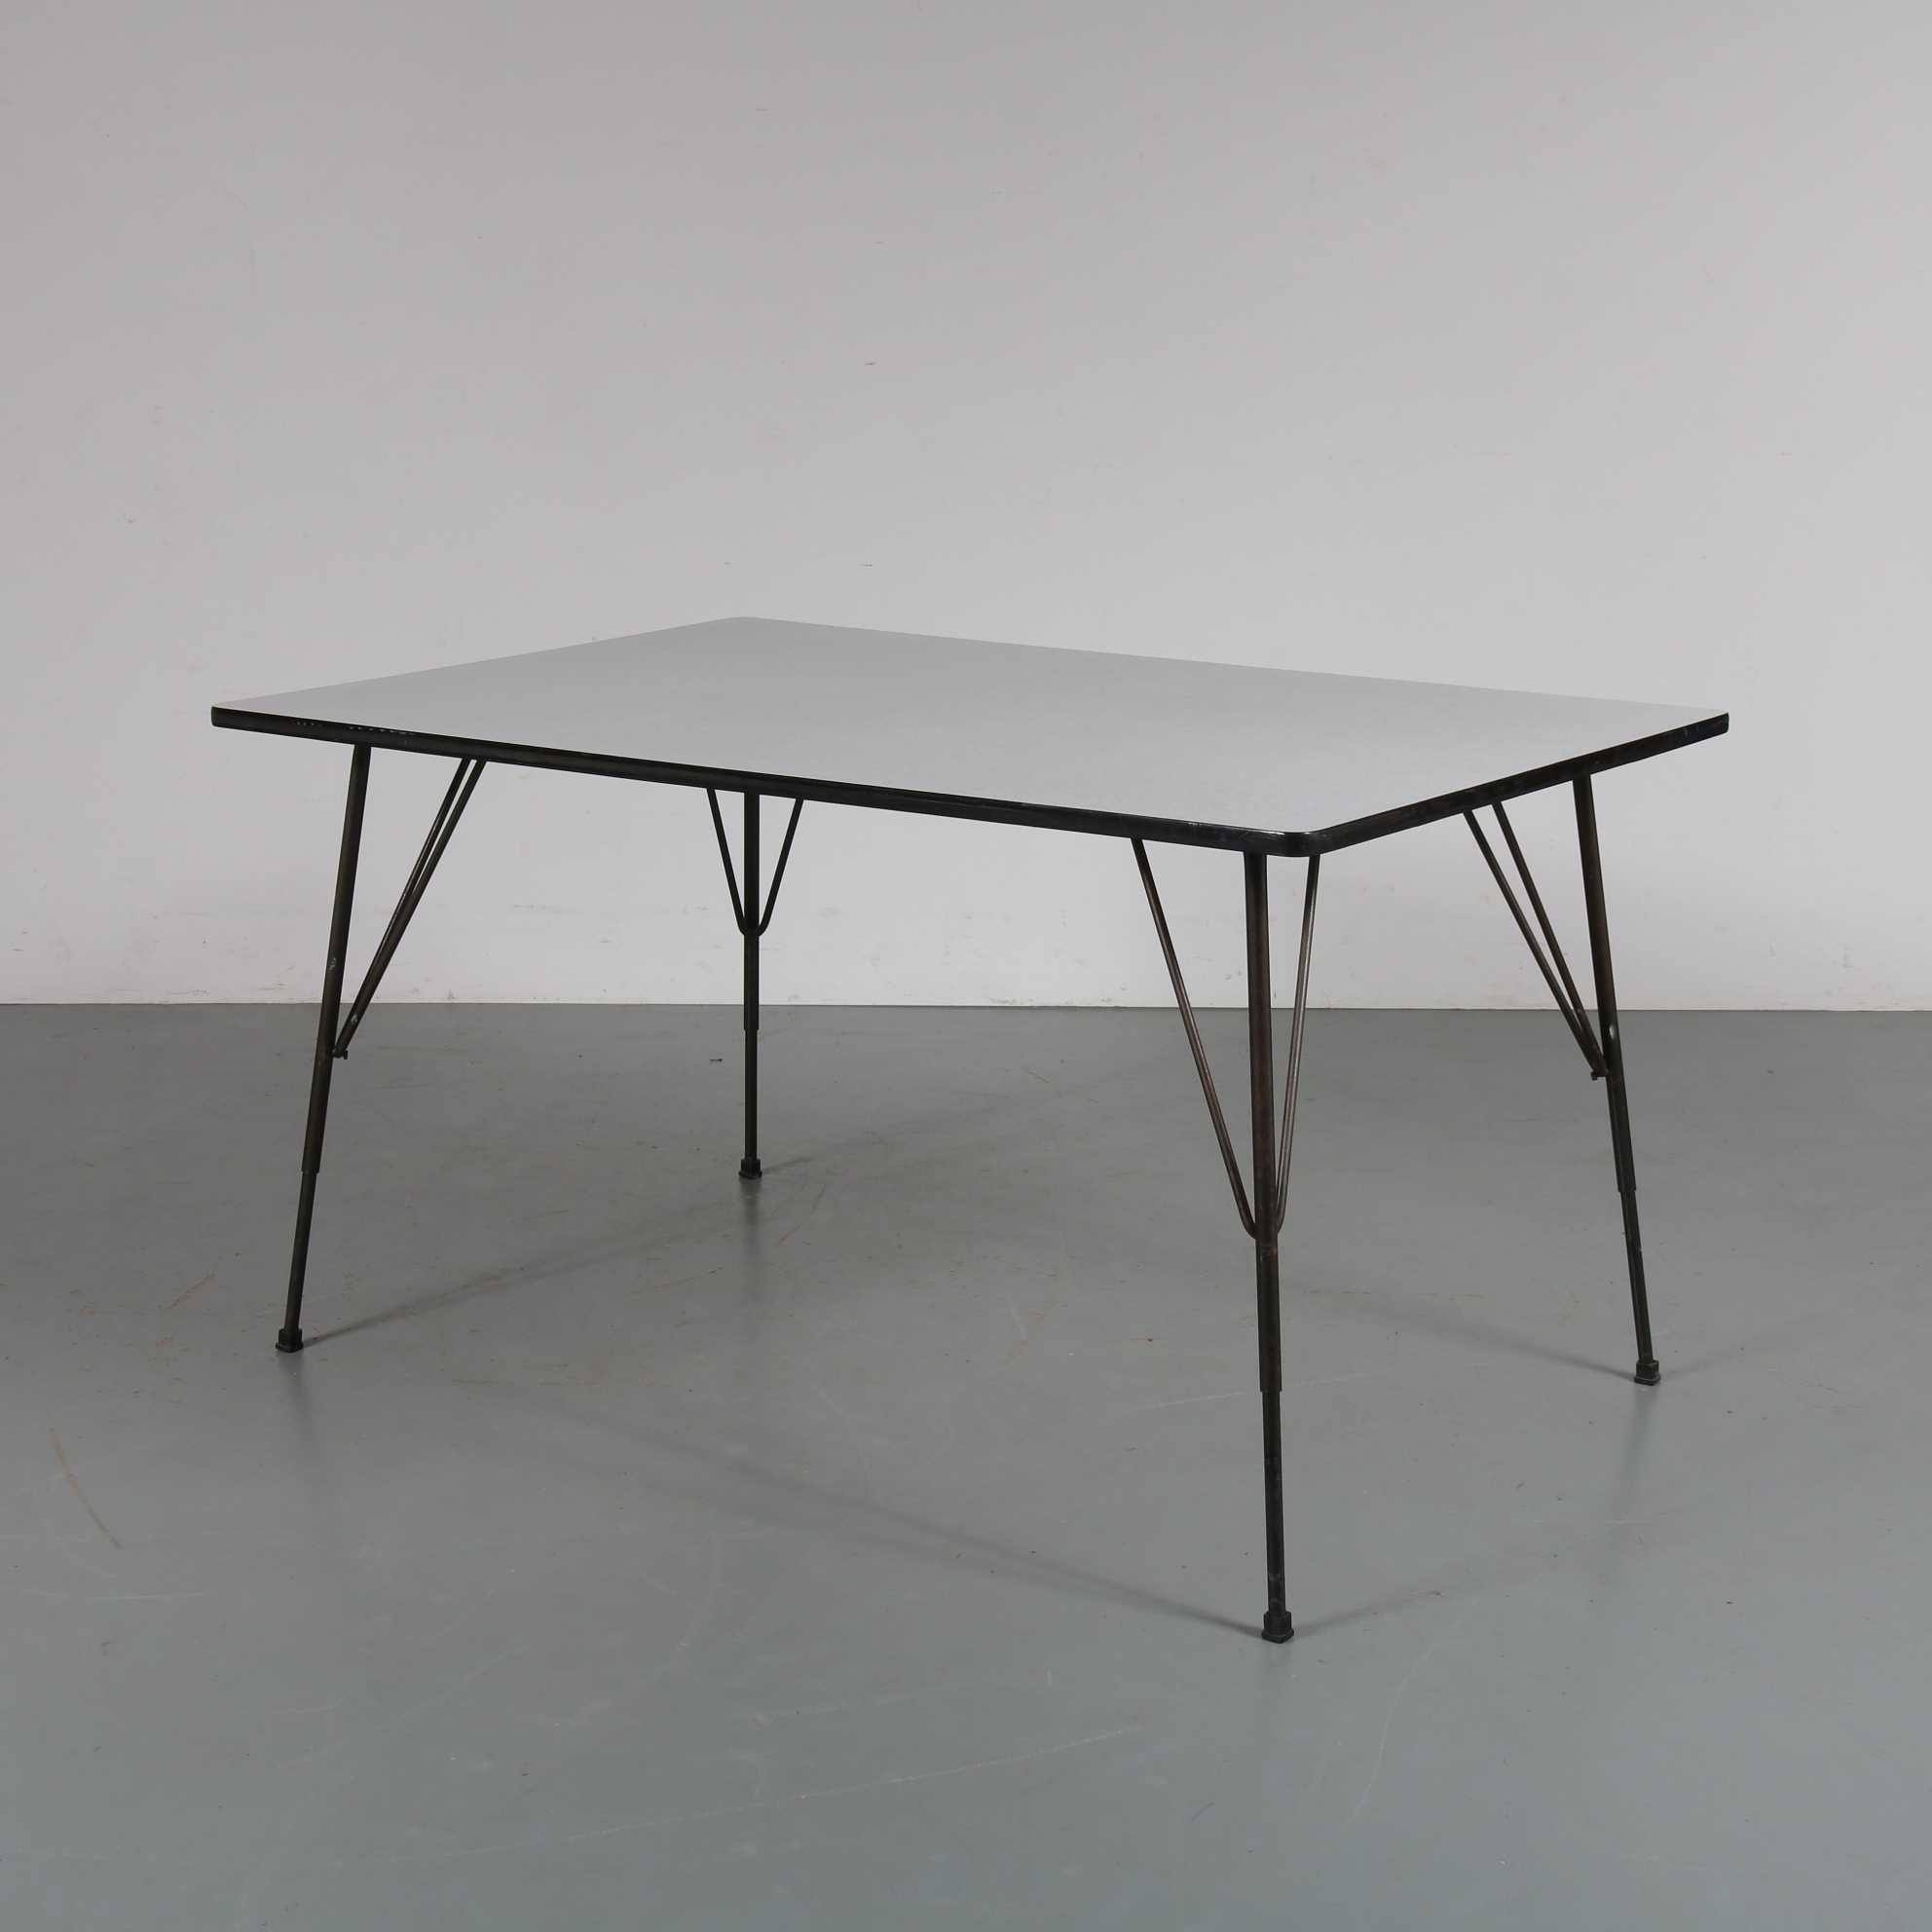 m22993 1950s Rectangular dining table on black metal legs with formica top, adjustable in height Rudolf Wolf(f) Elsrijk / Netherlands